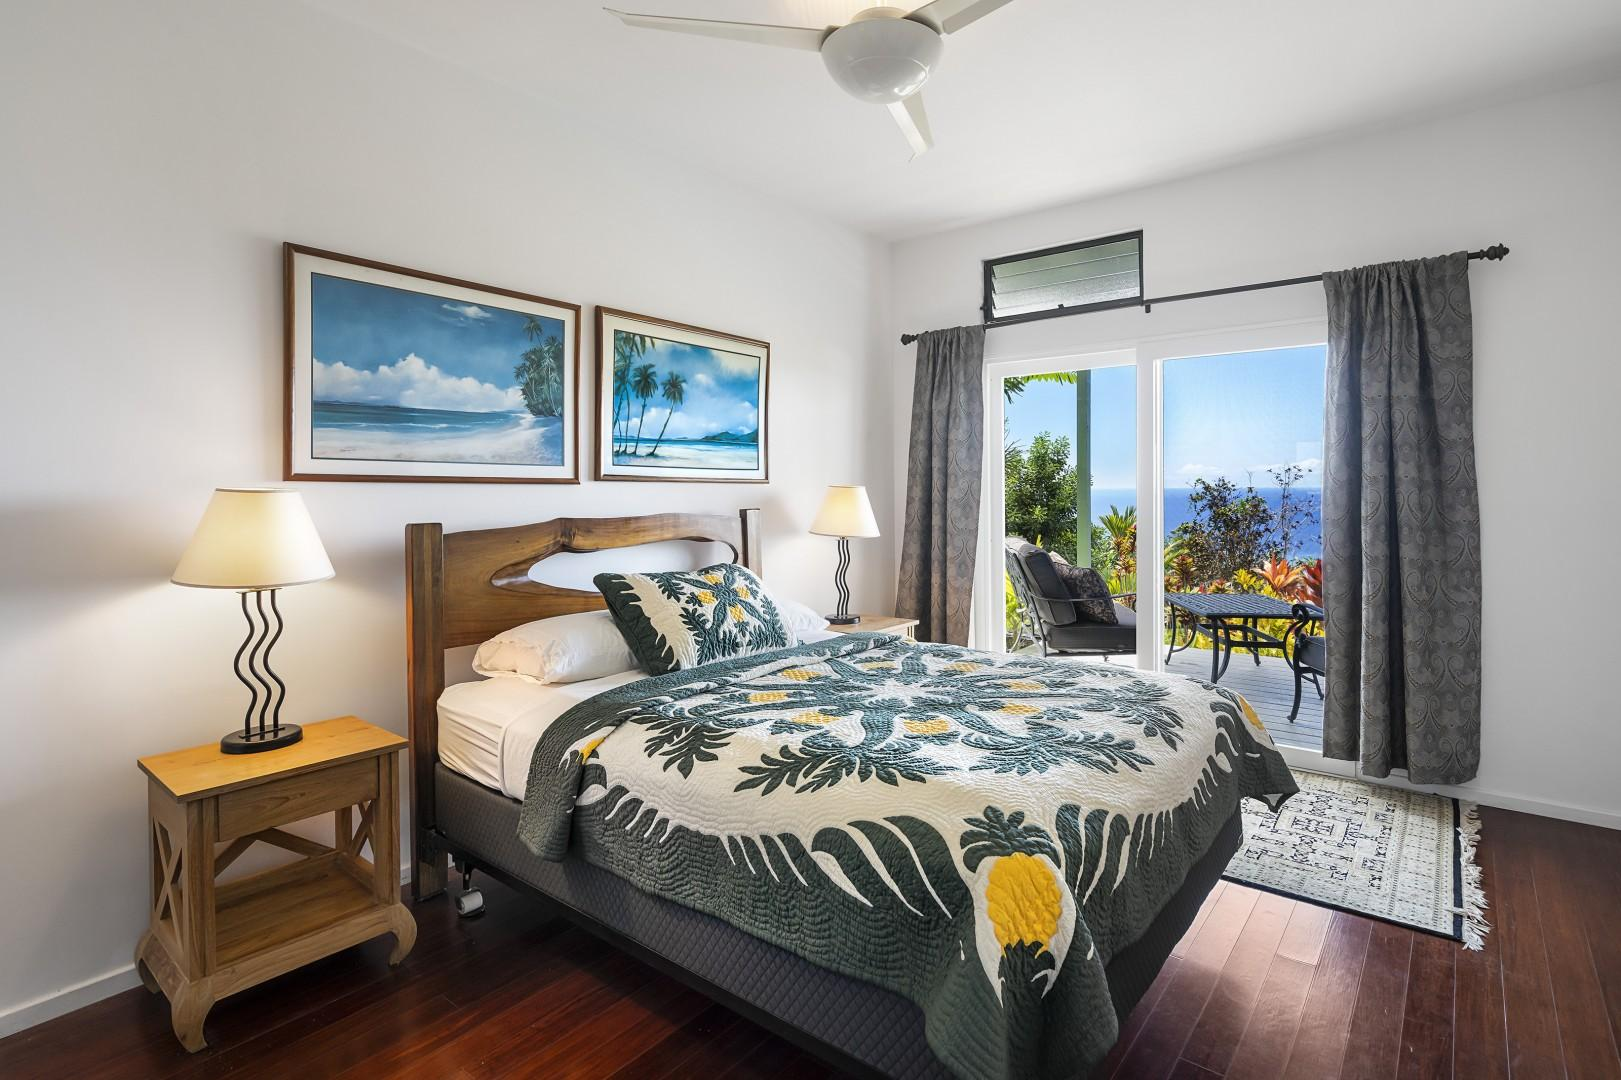 Second guest bedroom with Lanai access and outdoor shower!